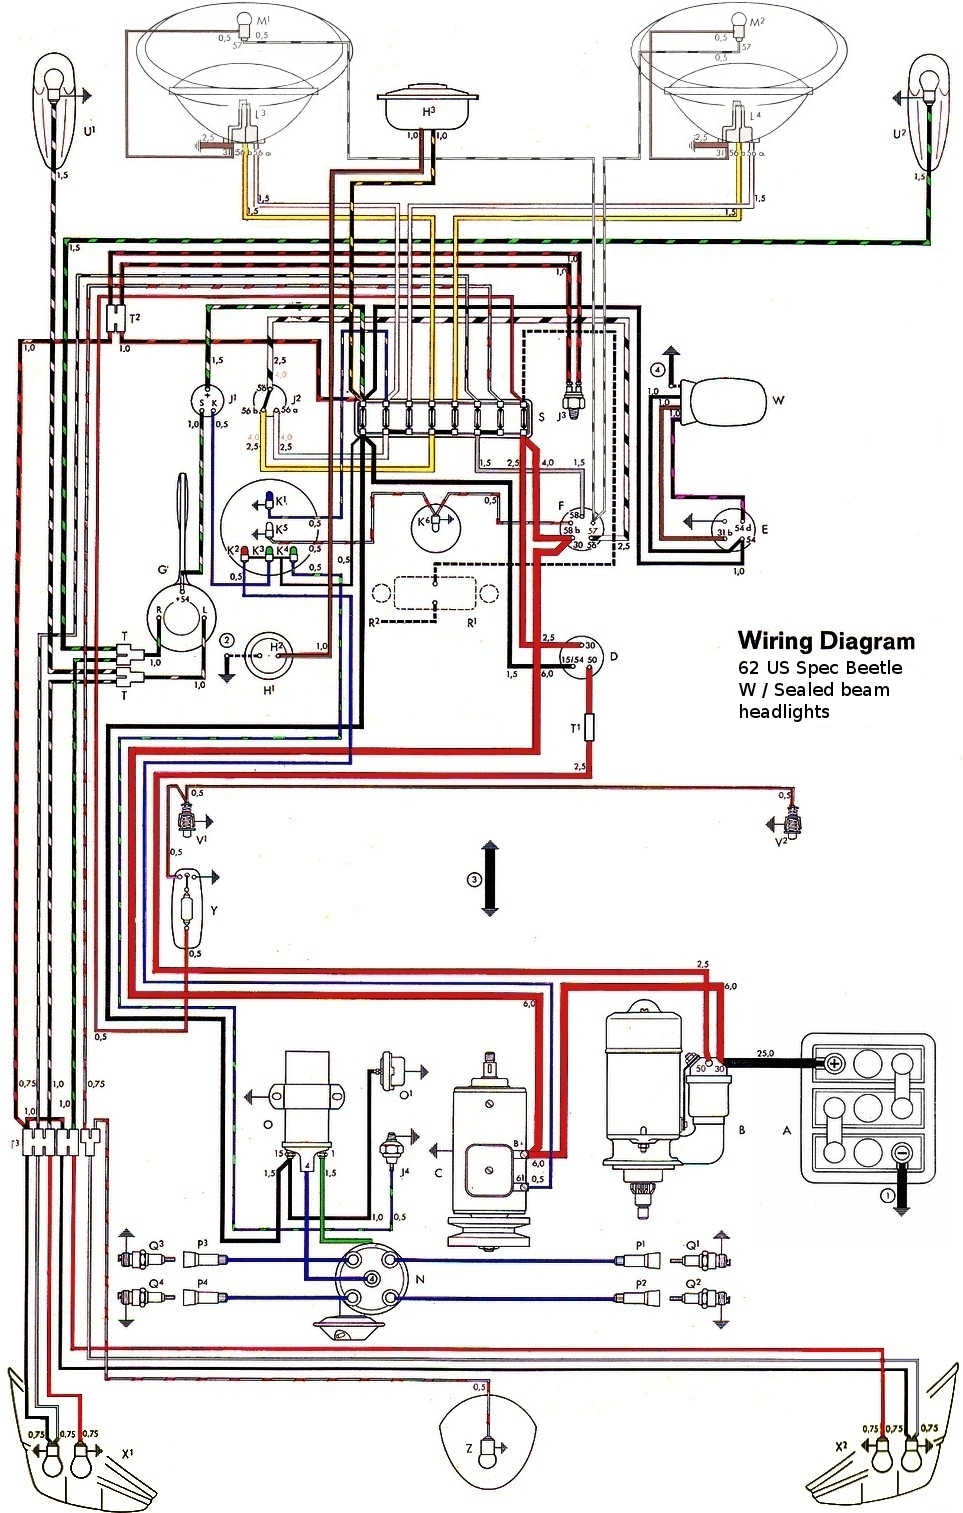 Samba Wiring Diagrams Another Blog About Diagram 1960 Impala For Chevy Get Free